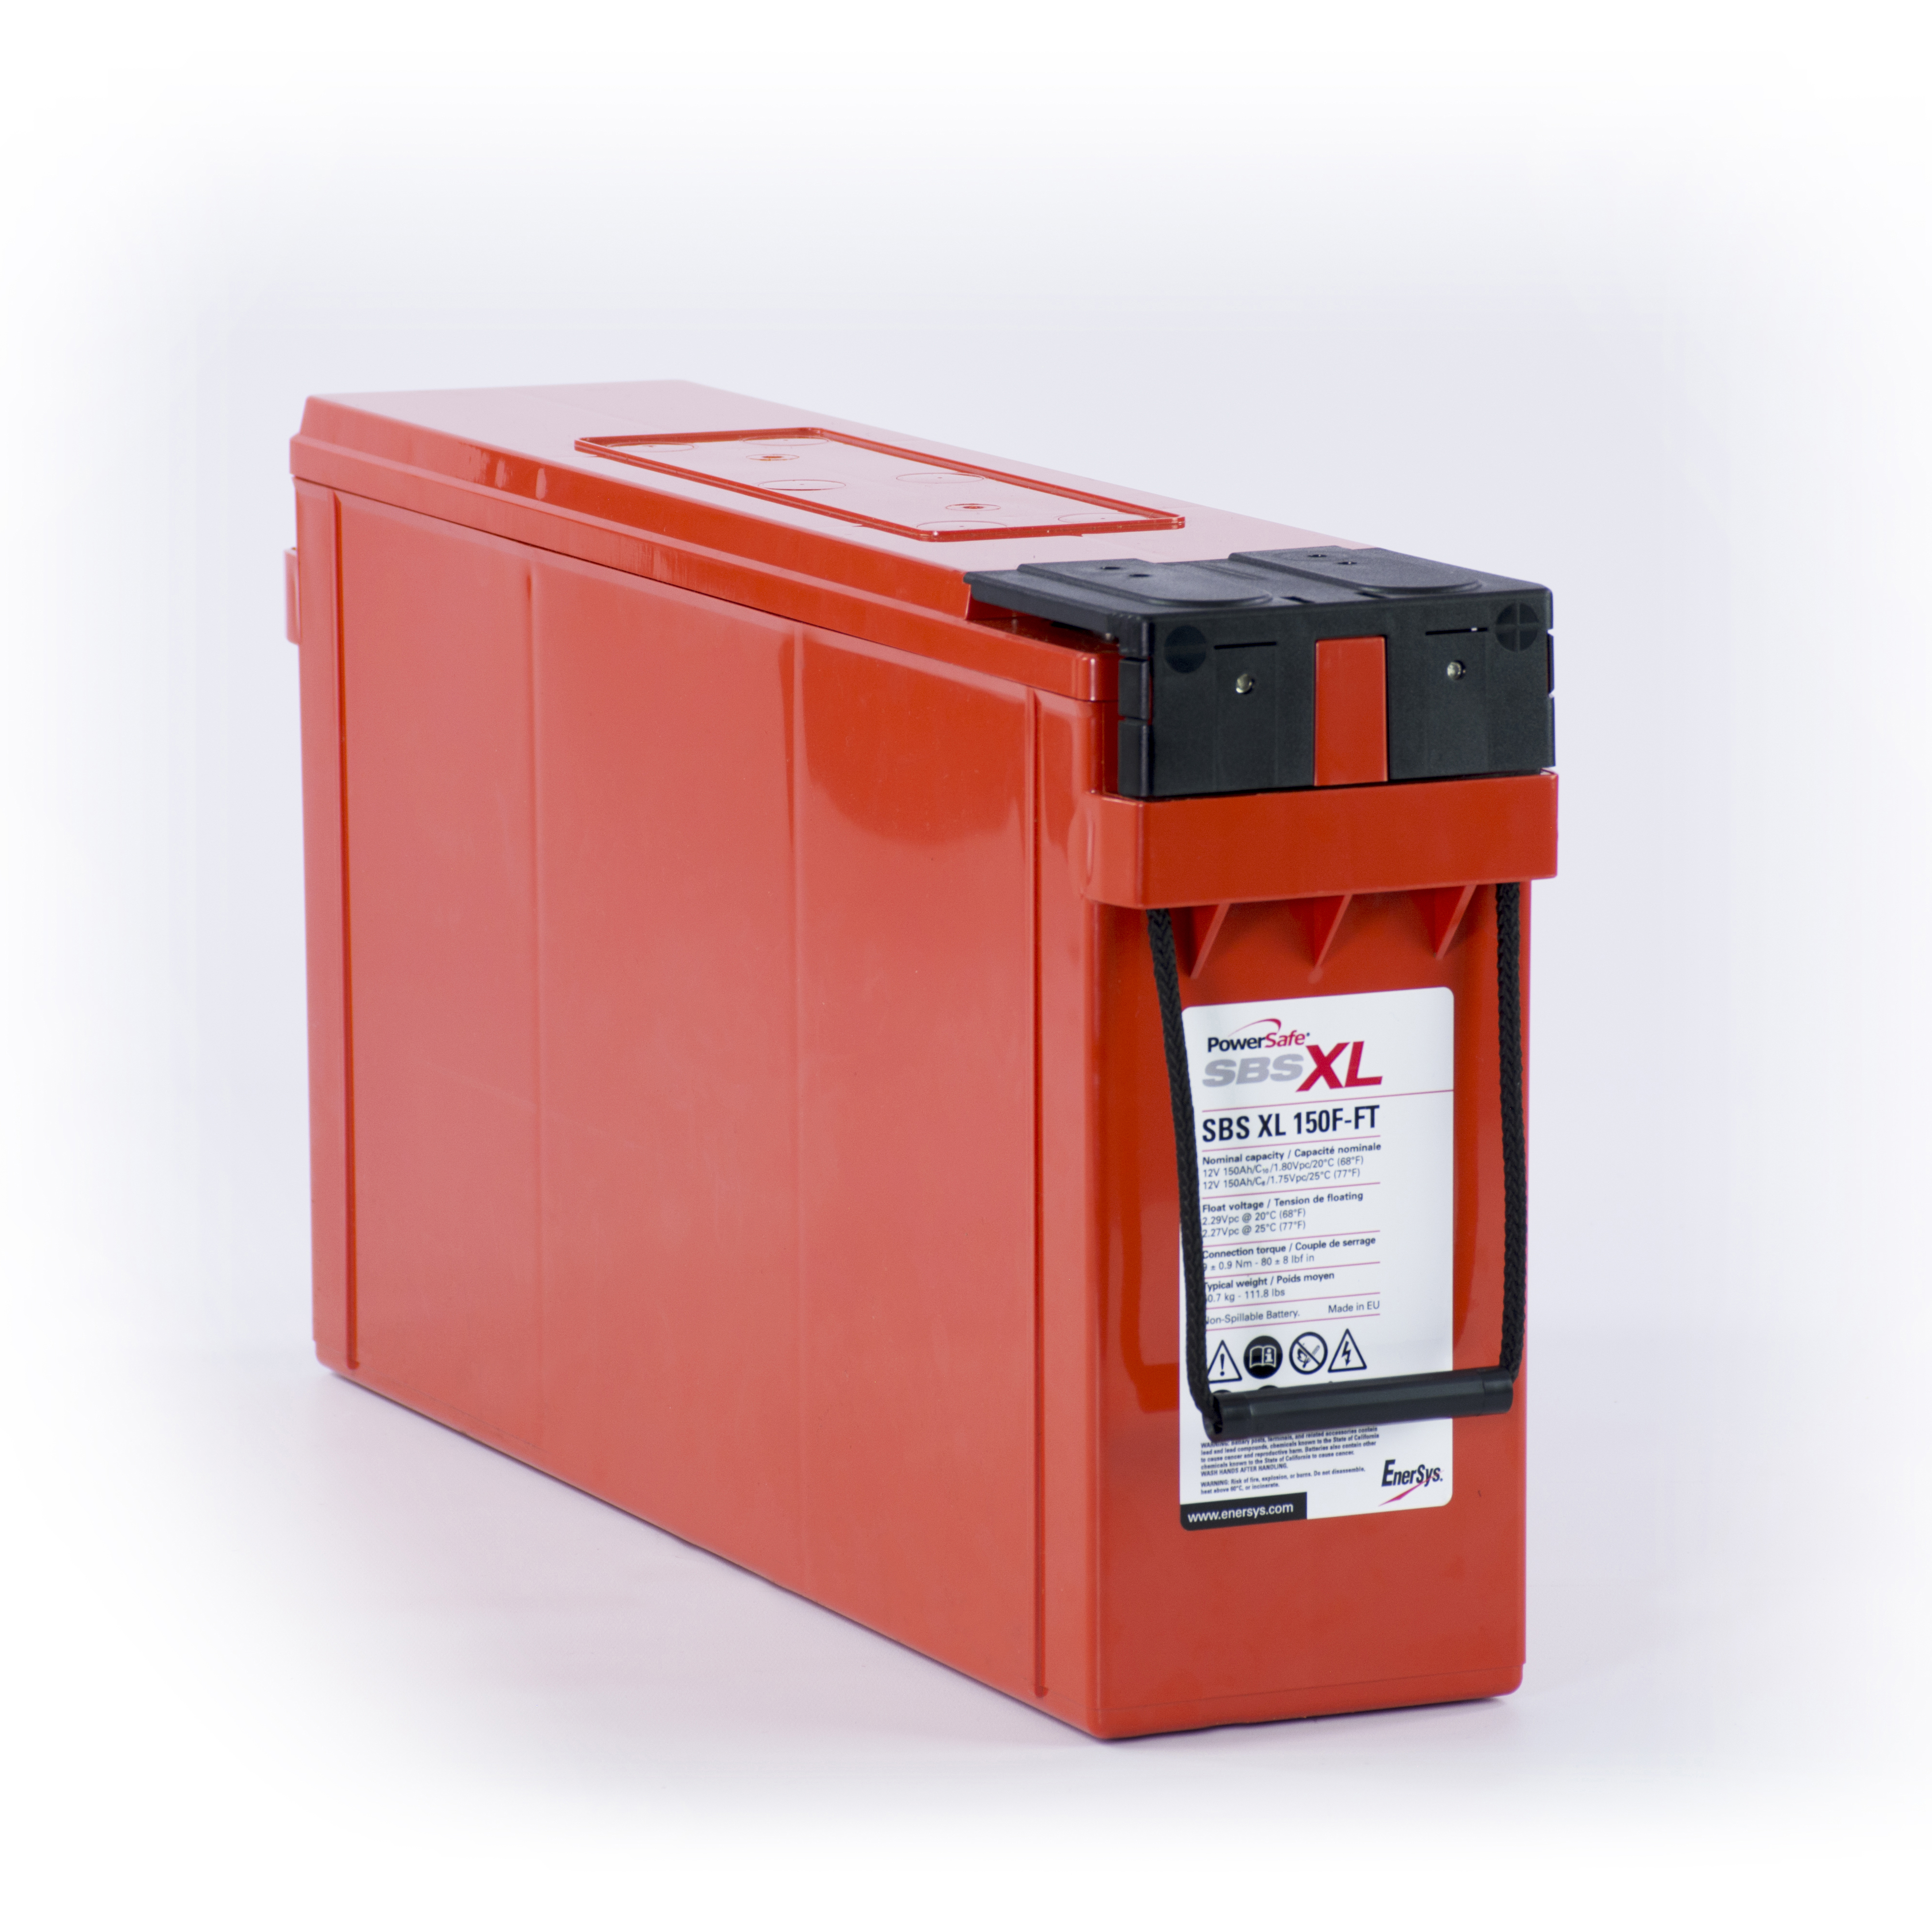 EnerSys PowerSafe SBS XL 12V 150F-FT